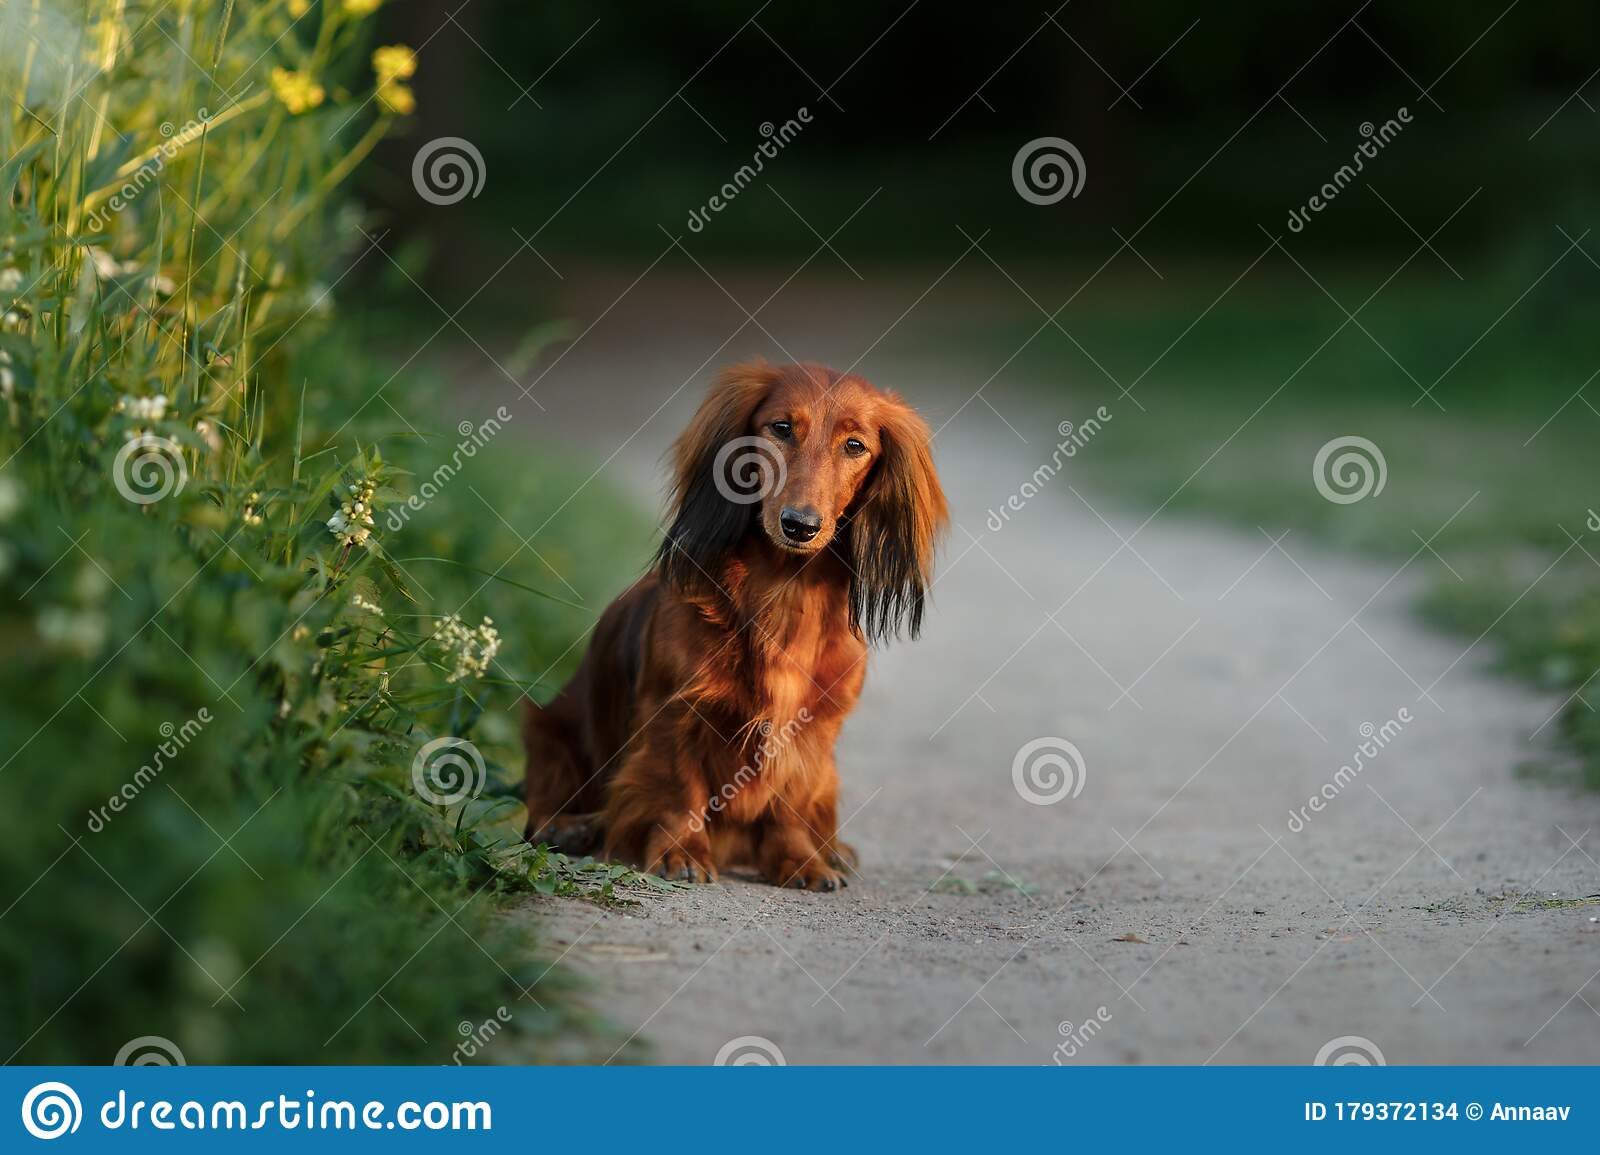 Dog On Nature In The Park Dachshund Puppy Pet For A Walk Stock Photo Image Of Domestic Friend 179372134